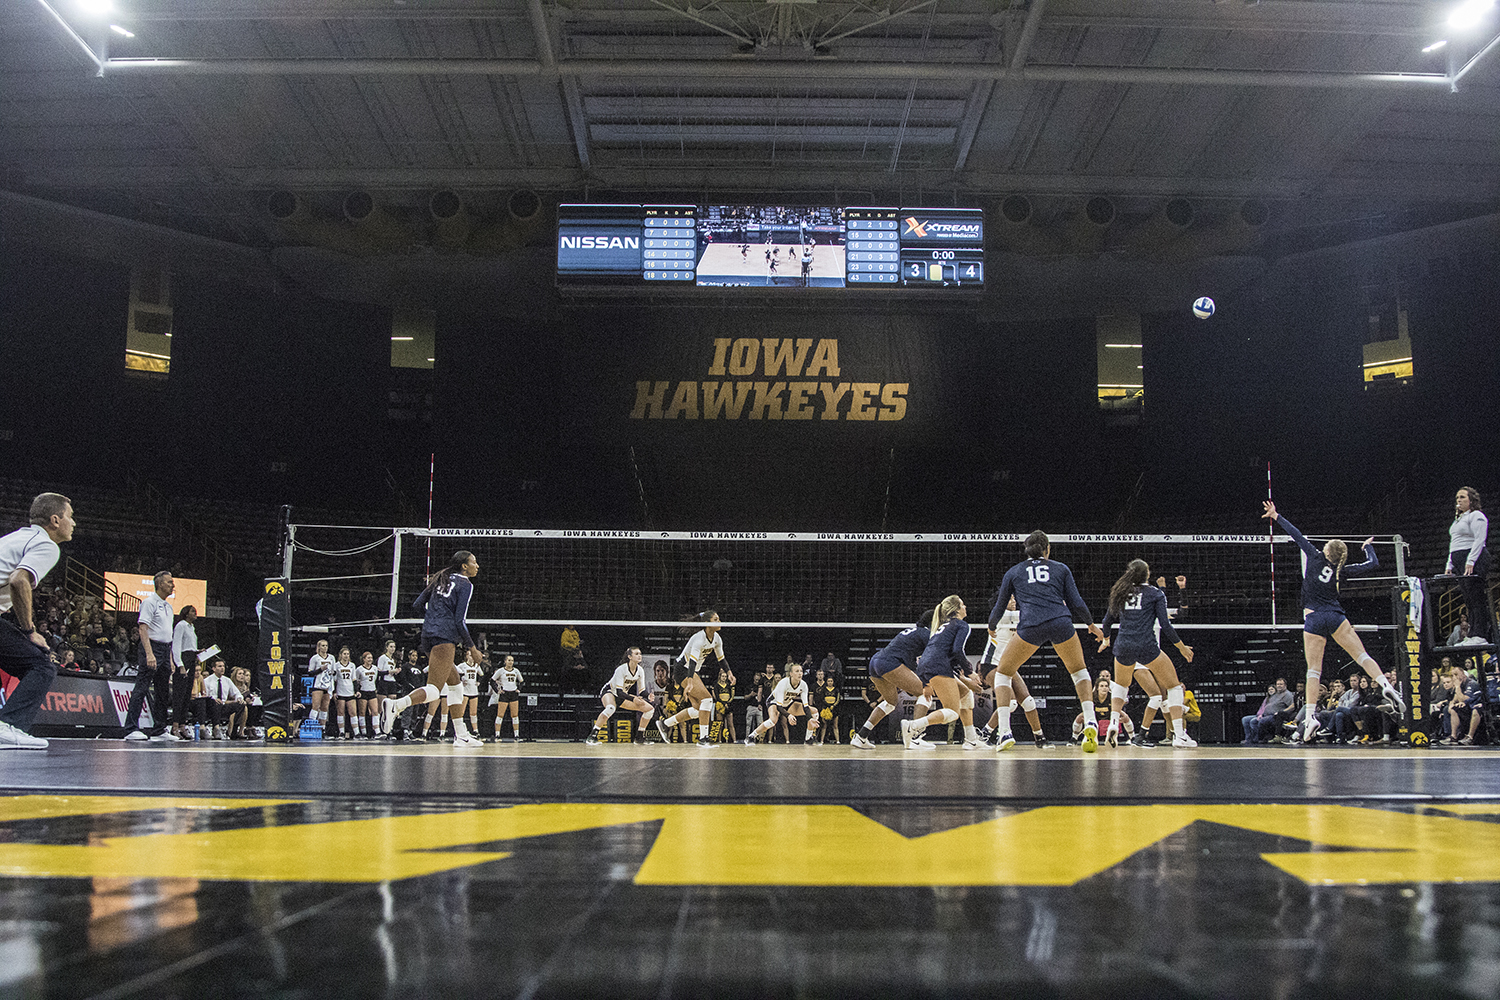 Penn+State+freshman+Jonni+Parker+prepares+to+spike+the+ball+during+a+volleyball+match+between+Iowa+and+Penn+State+at+Carver-Hawkeye+Arena+on+Saturday%2C+Nov.+3%2C+2018.+The+Hawkeyes+were+shut+out+by+the+Nittany+Lions%2C+3-0.